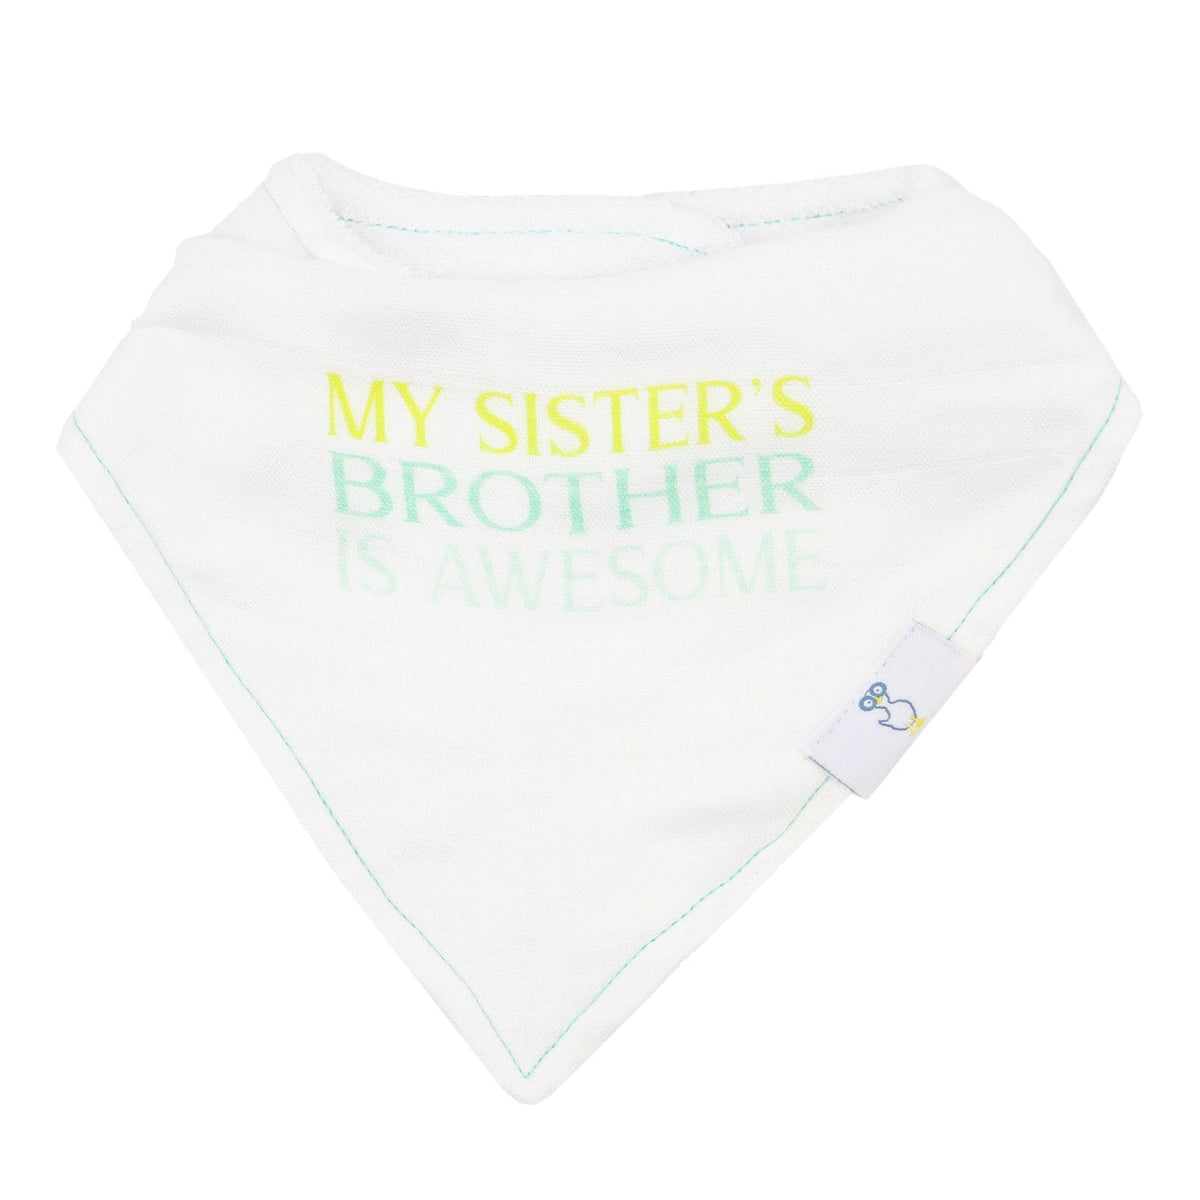 2 PK Muslin & Terry Cloth Bib Set Brother/Arrows - Goosewaddle